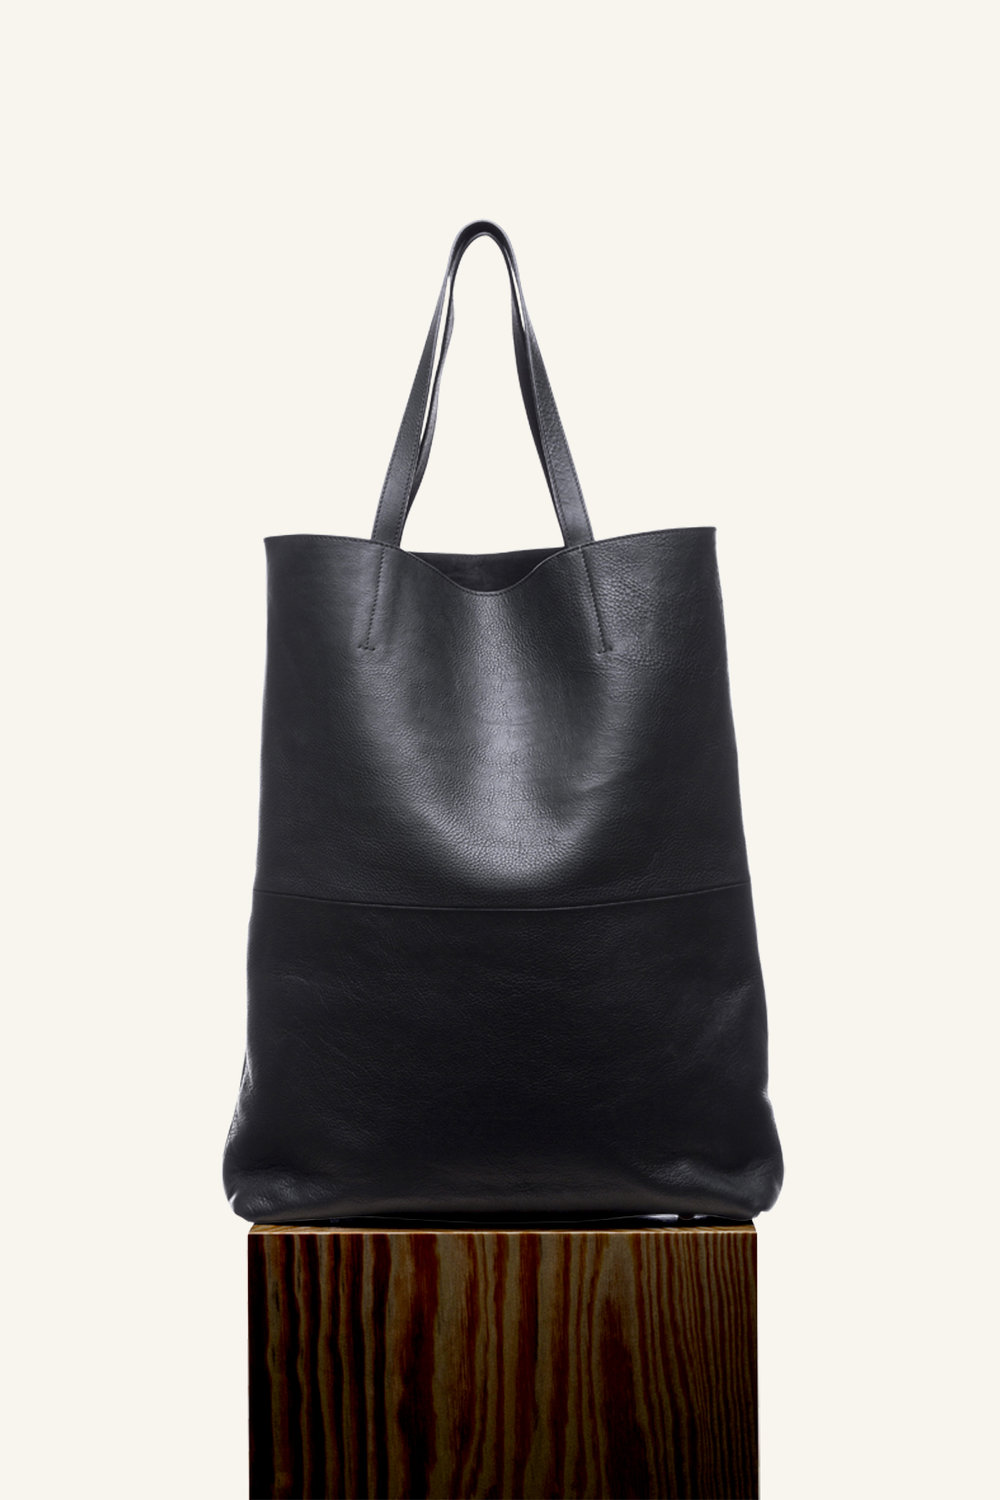 Regina tote largenew low.jpg